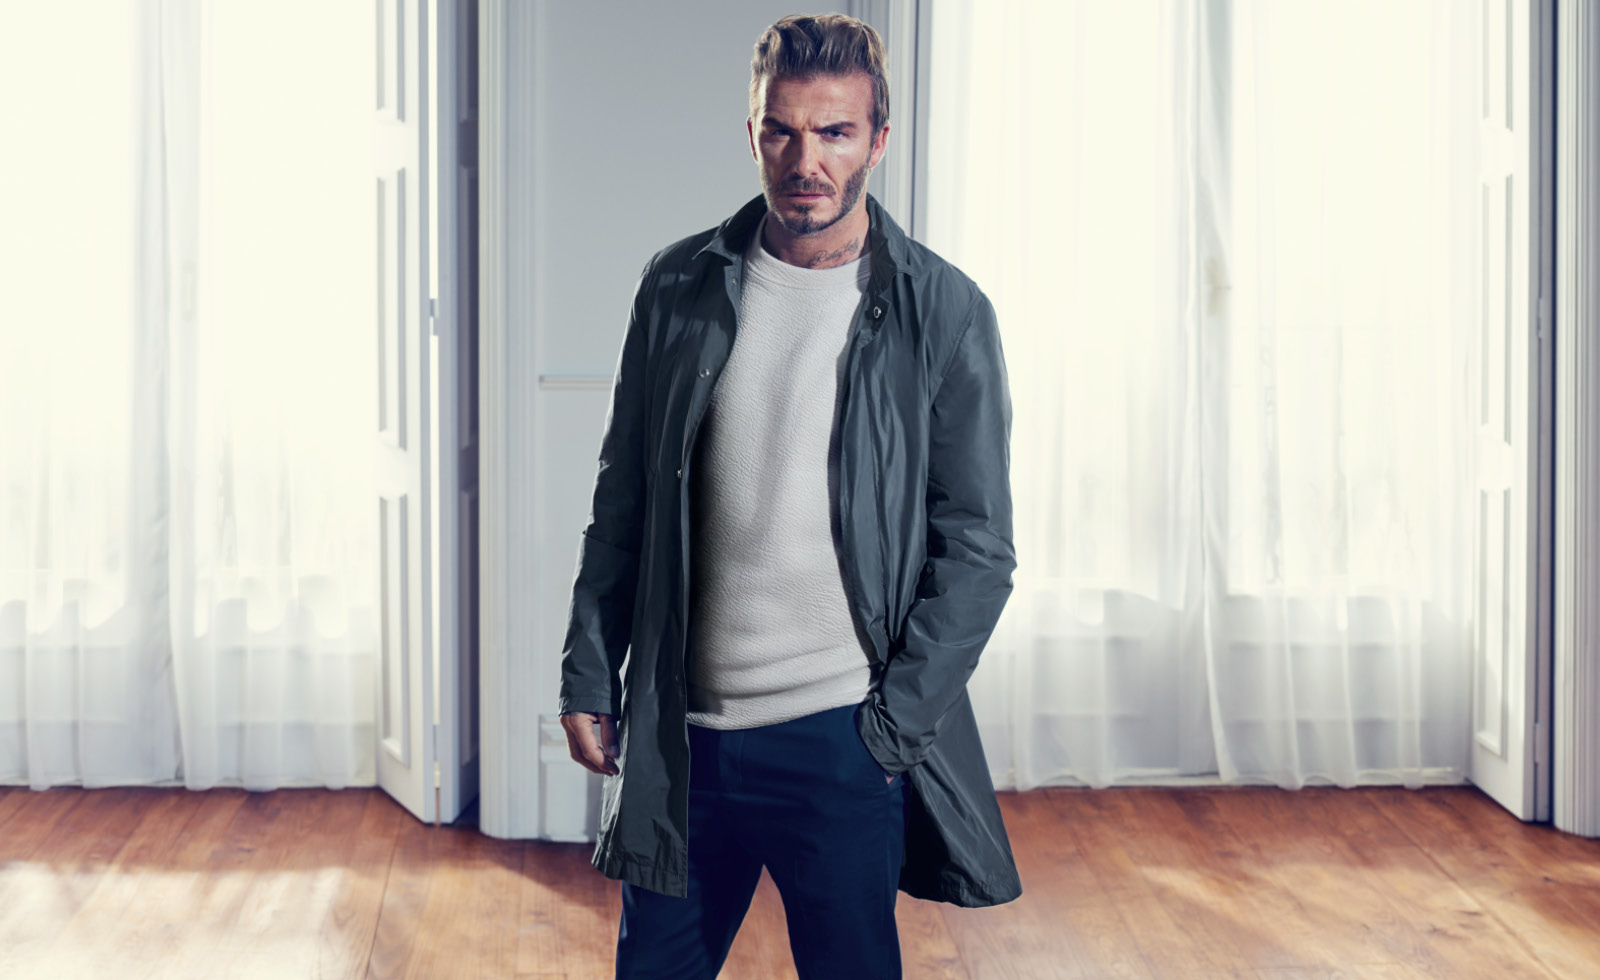 David Beckham - The Knitted Sweater